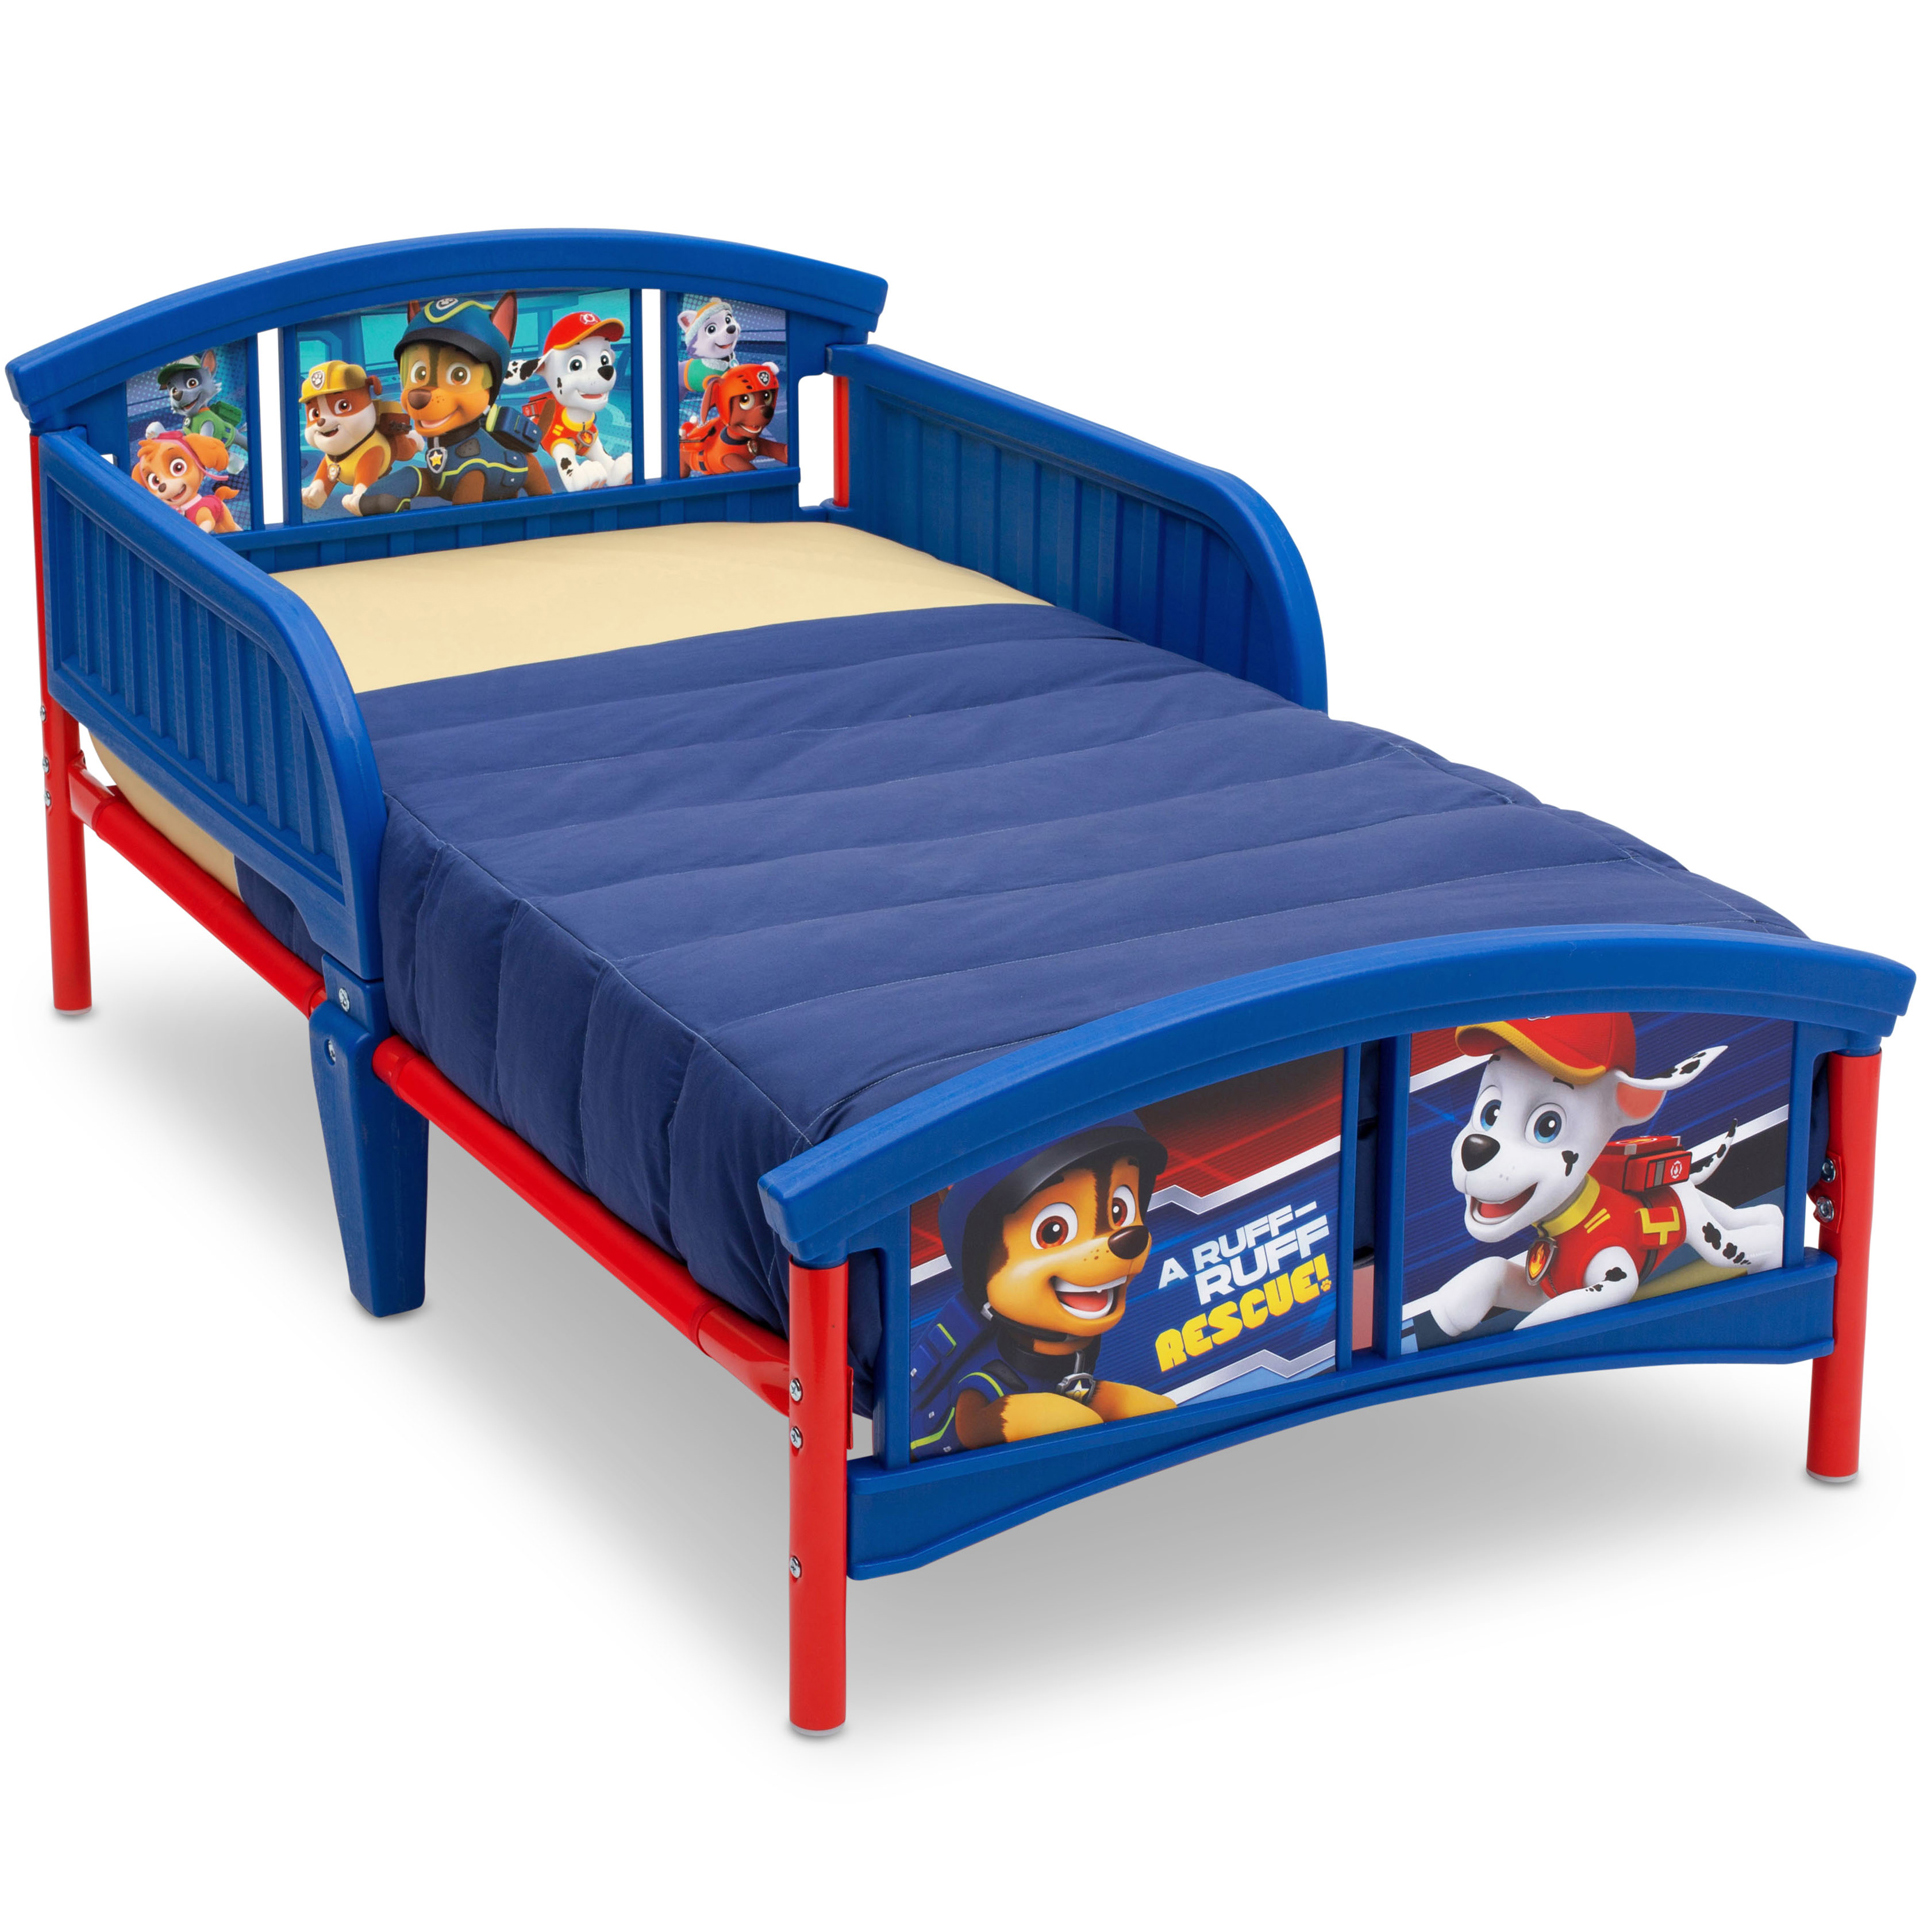 Delta Children Nick Jr. PAW Patrol Plastic Toddler Bed, Blue - Traveller Location